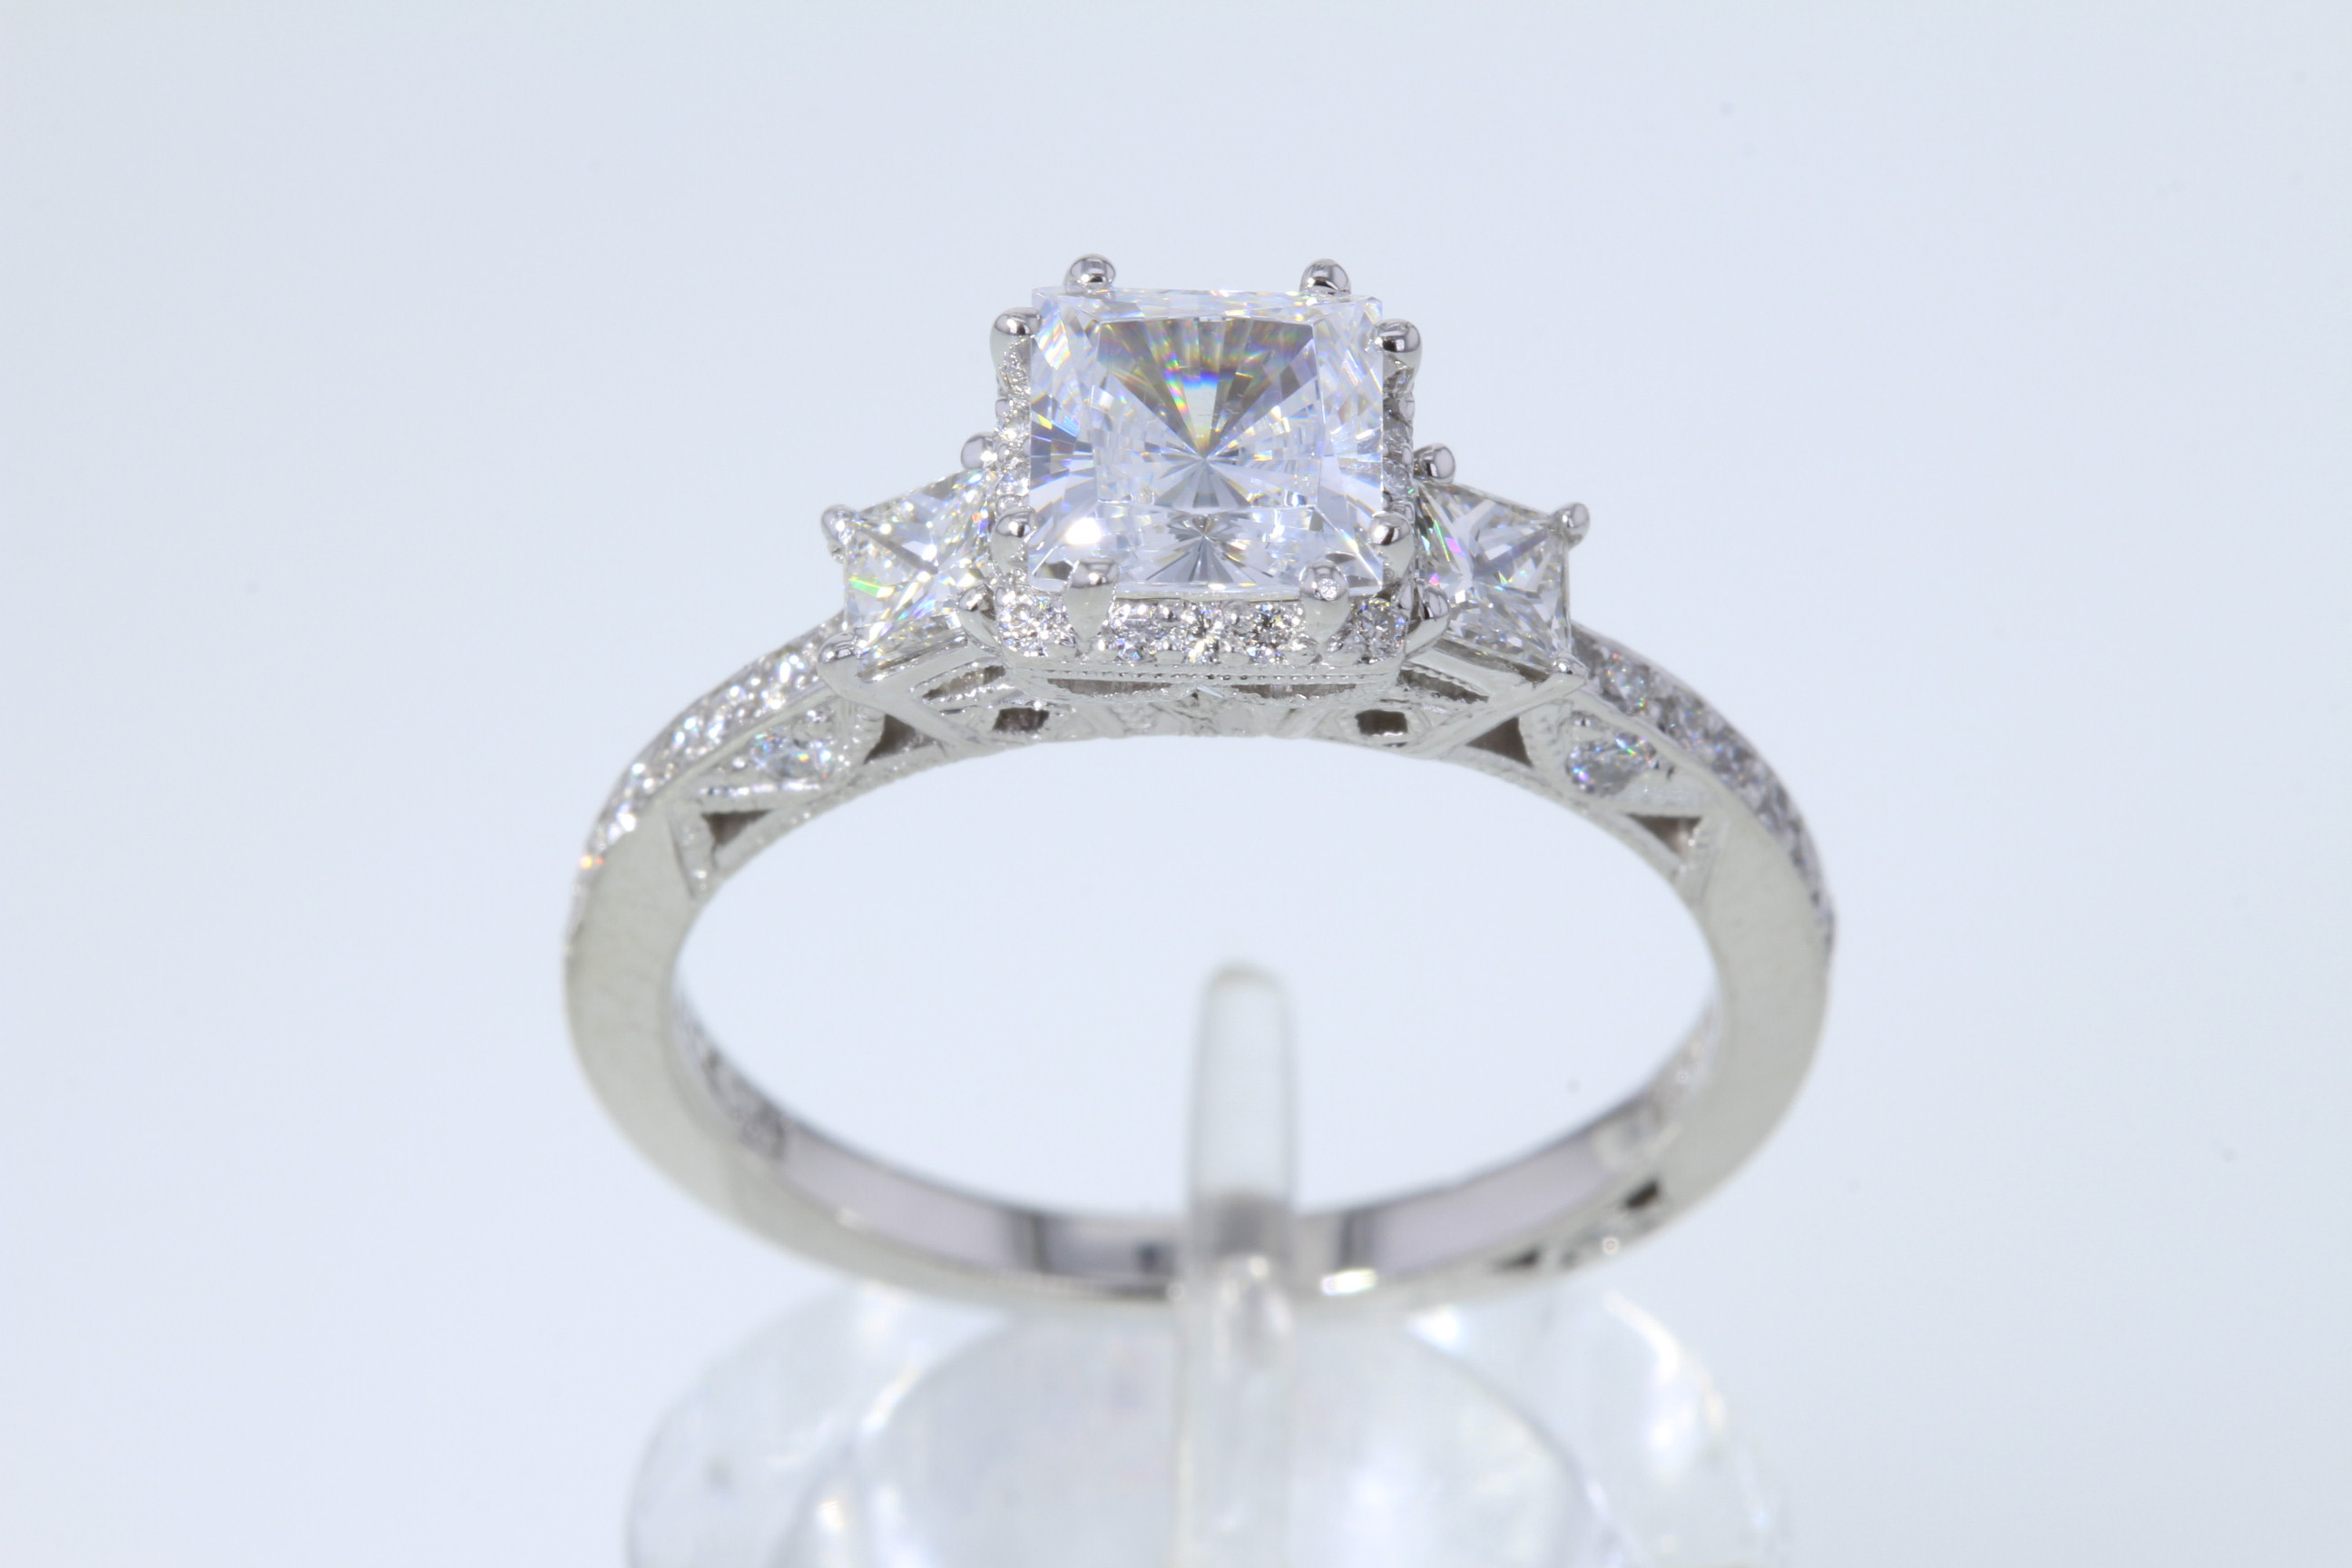 round carolyn fine jewellery certified ring nottingham and gia engagement brilliant codd g platinum diamond modern bespoke products rings trilogy